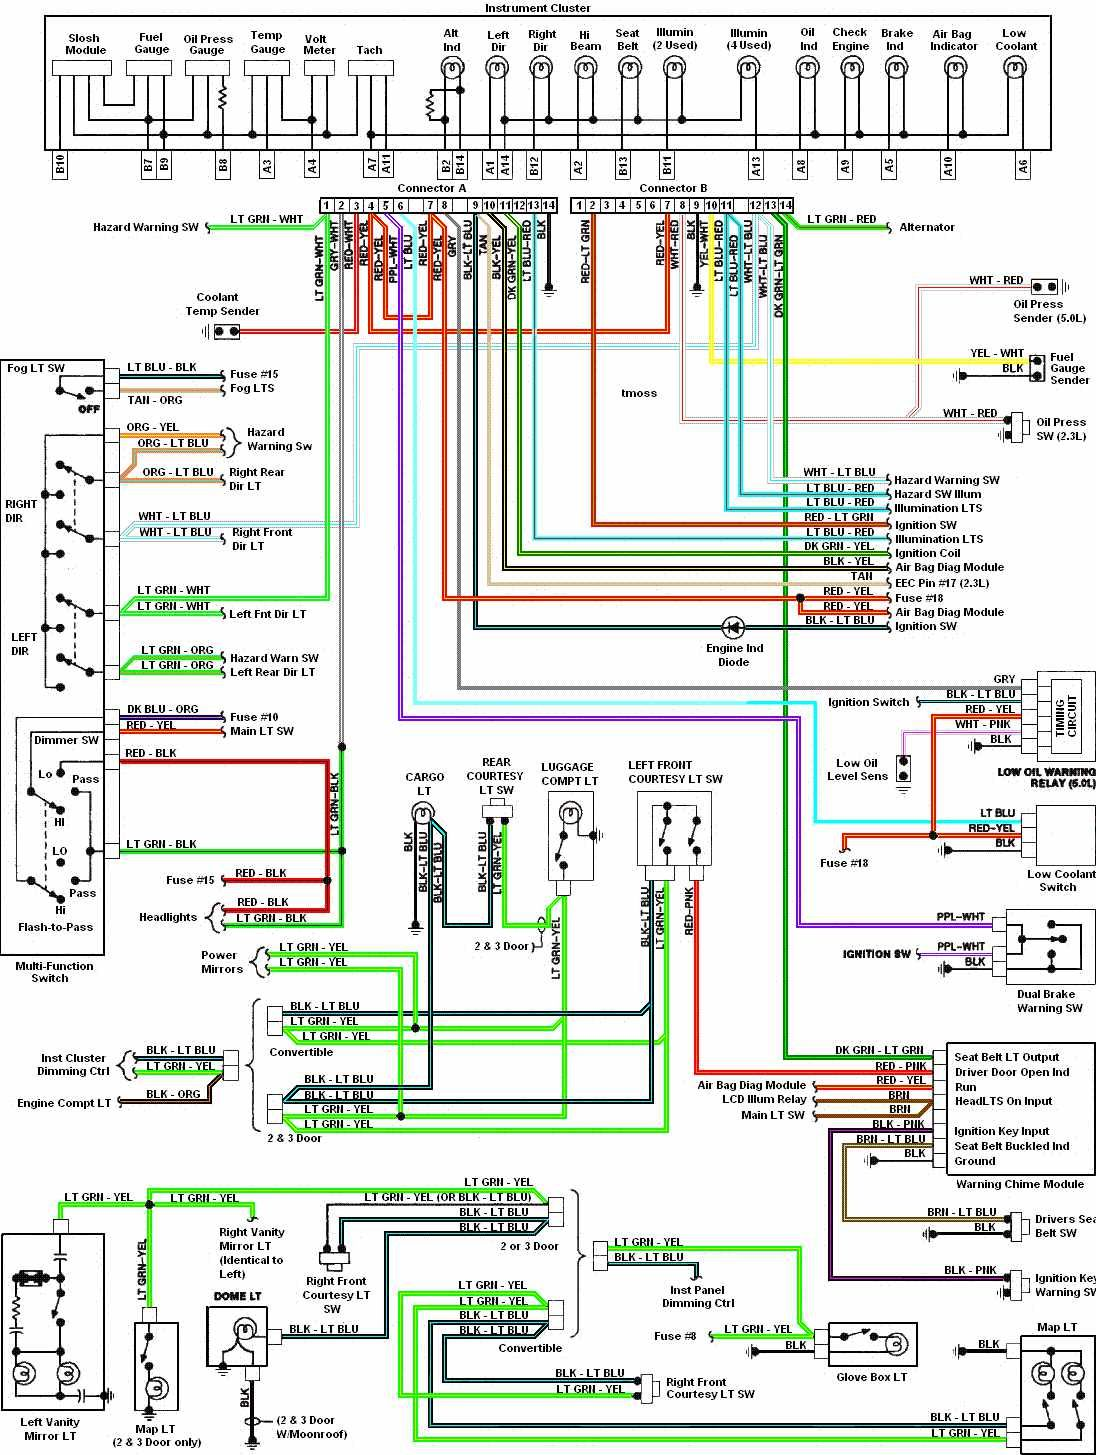 92 mustang eec wiring diagram automotive wiring diagrams 95 mustang wiring diagram 90 mustang wiring diagram [ 1096 x 1455 Pixel ]